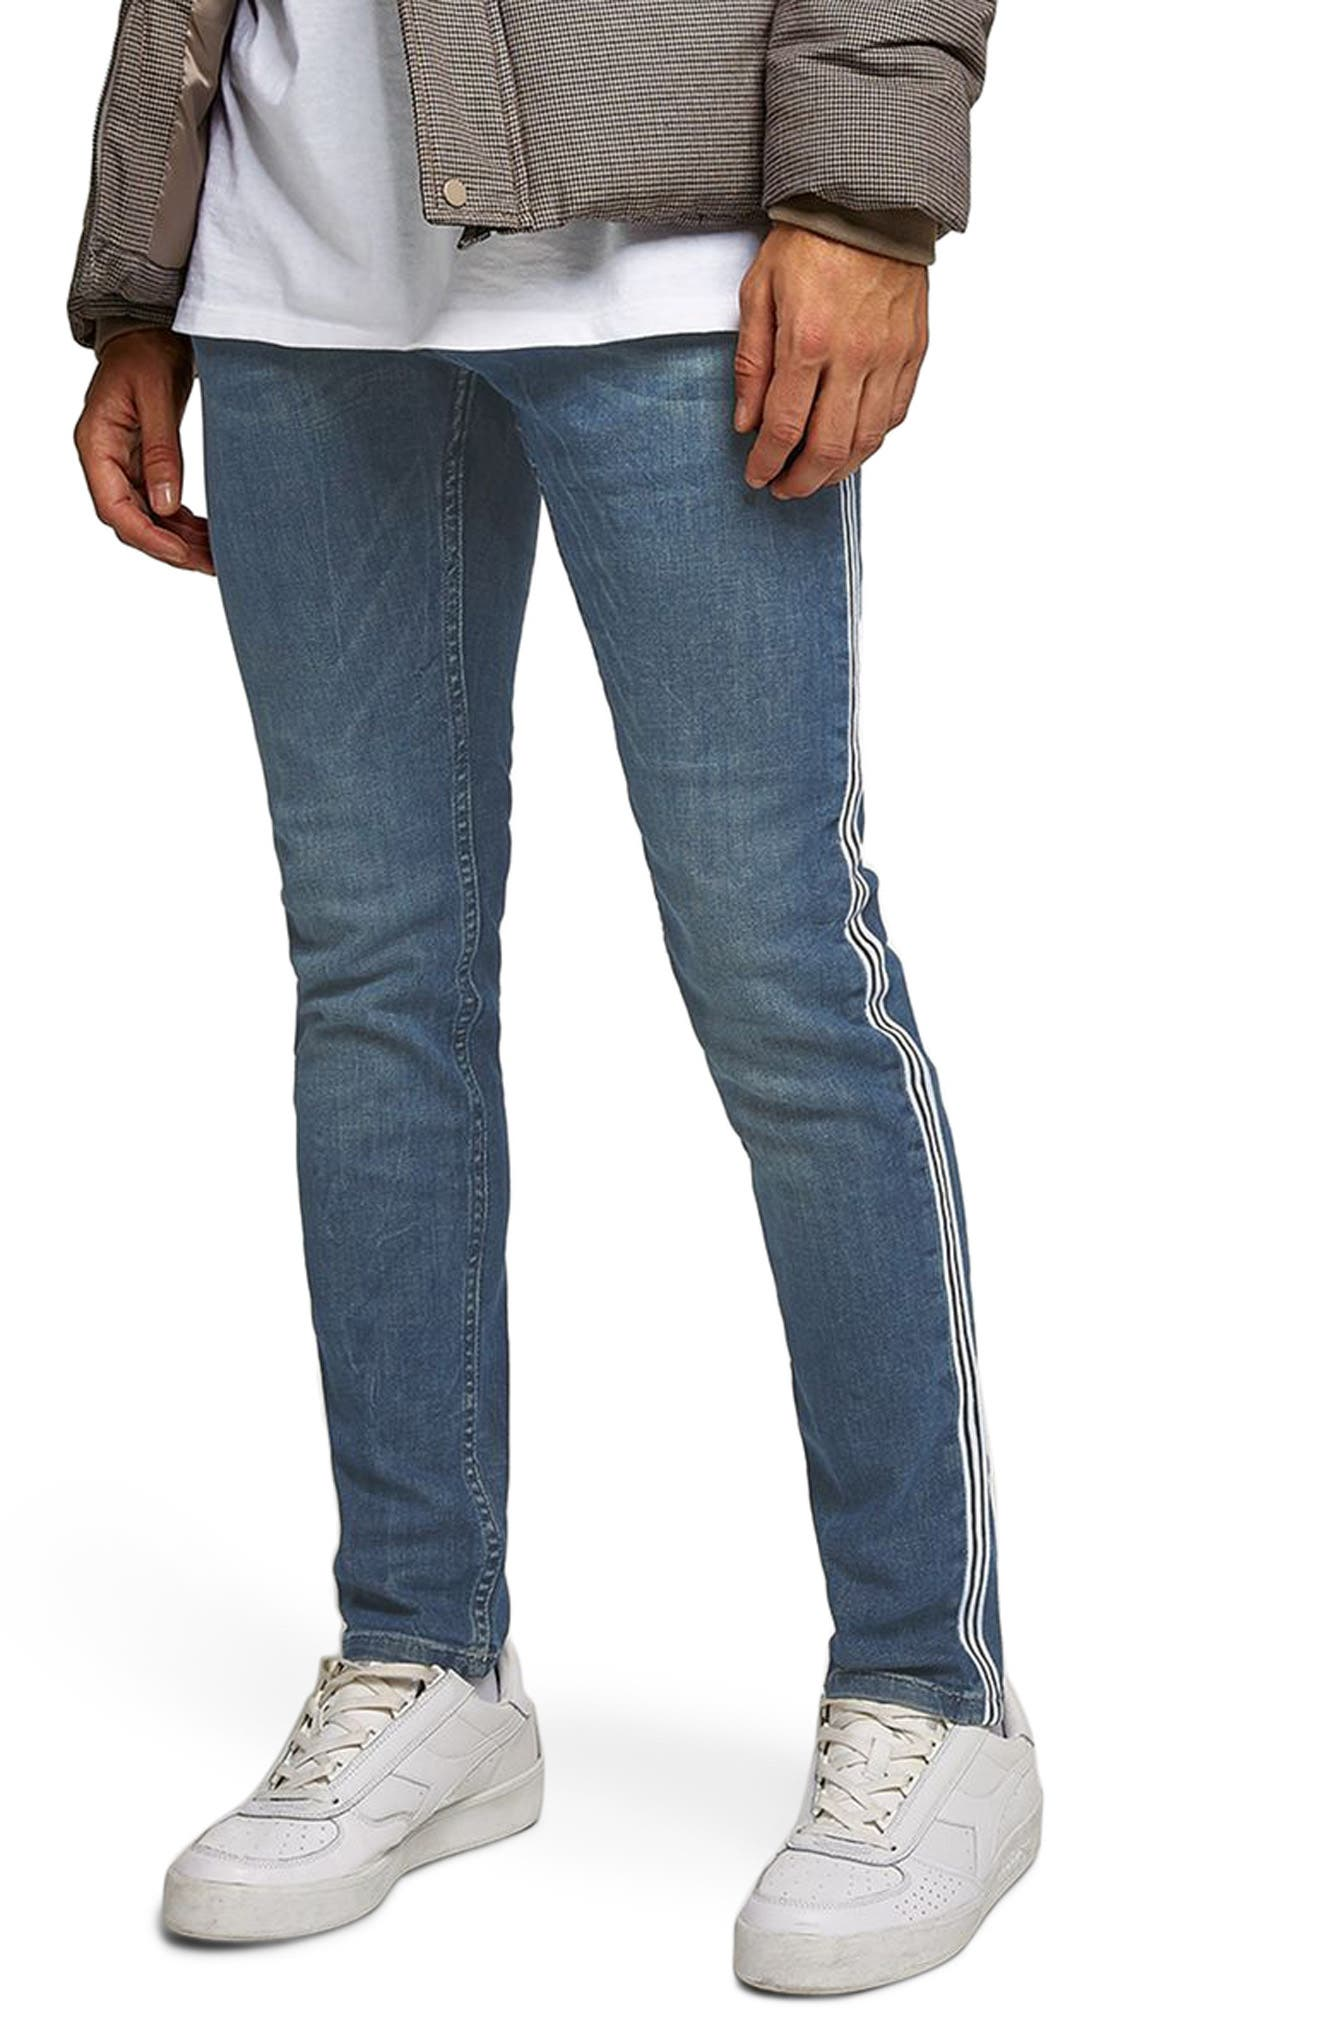 Tape Stretch Skinny Fit Jeans,                         Main,                         color, Blue Multi